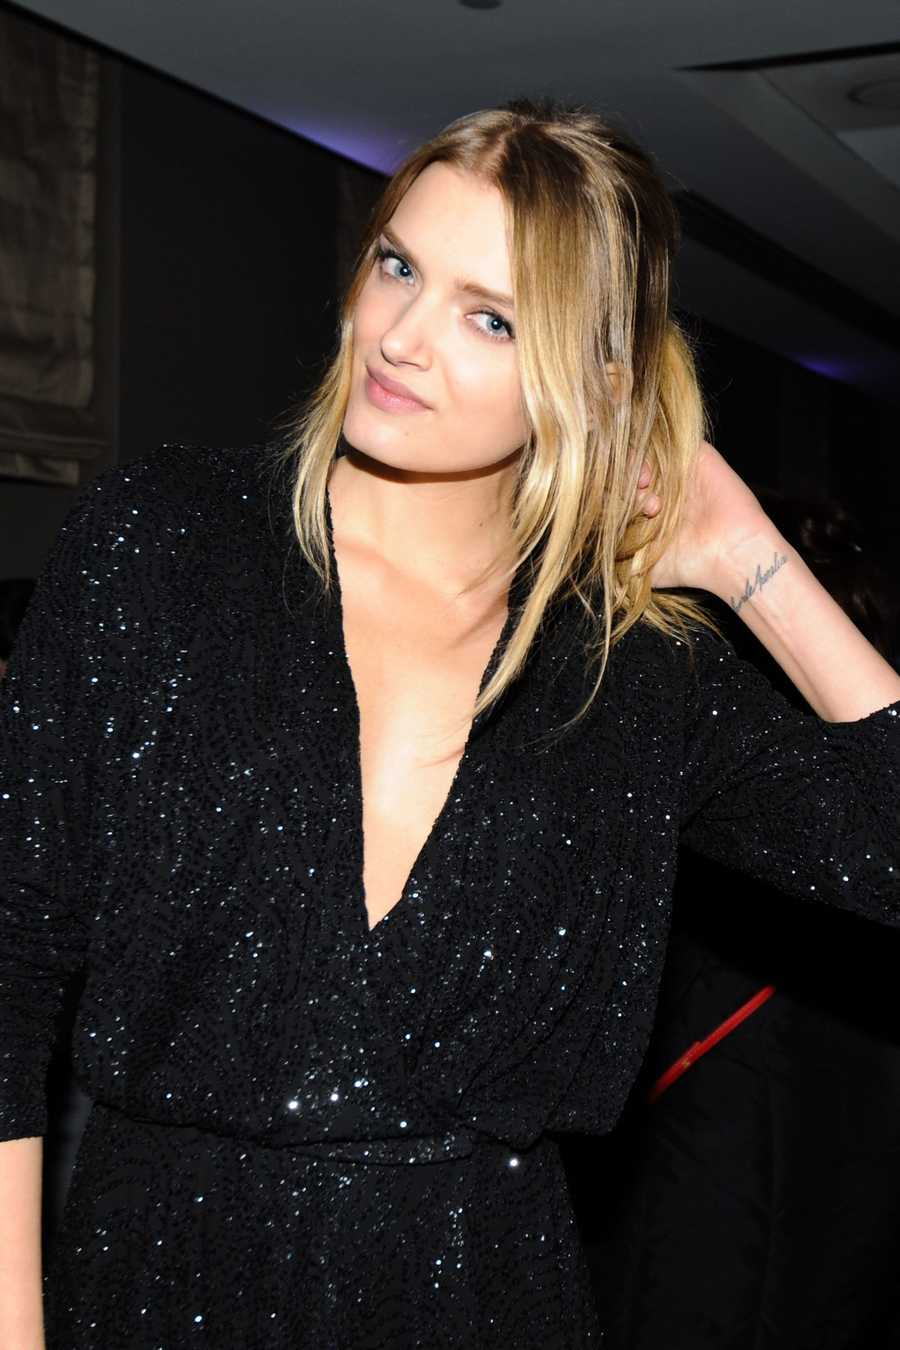 Lily Donaldson The model has her mother's and sister's names inked on her left wrist.